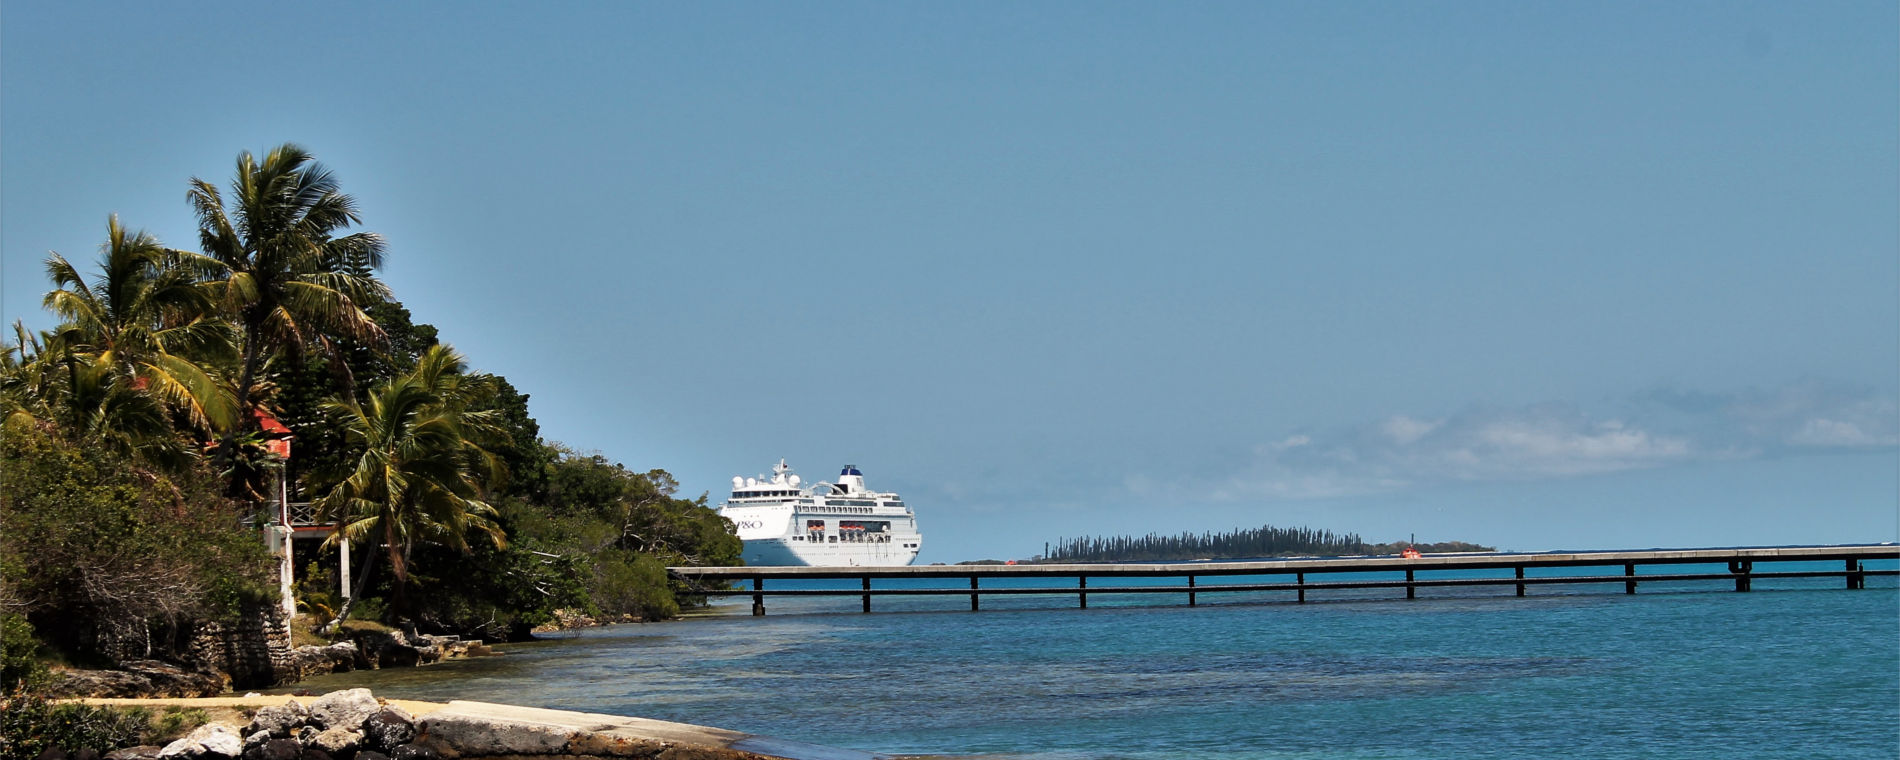 isle-of-pines-with-ship.jpg